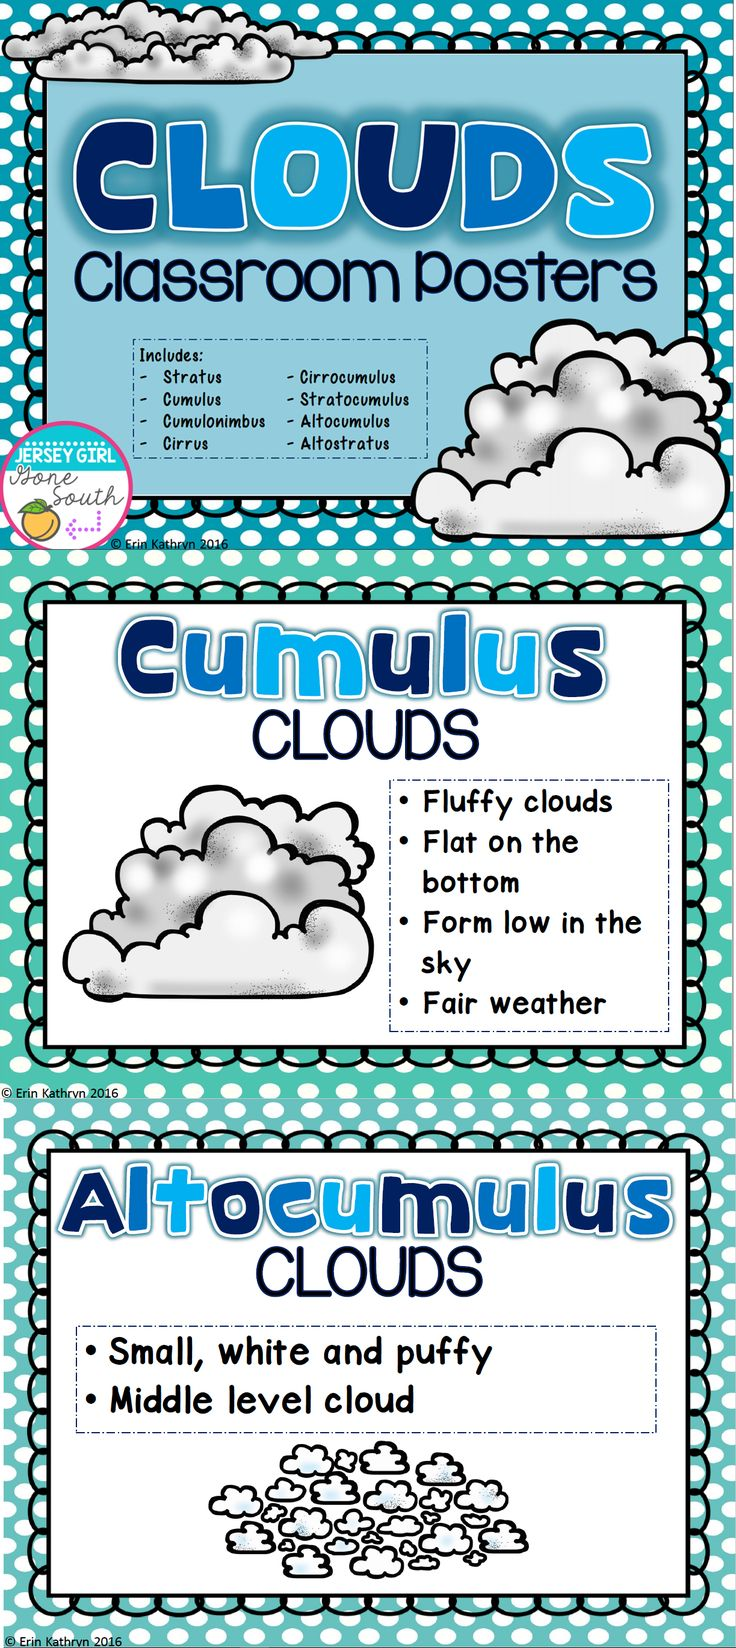 These cloud posters give a short to the point description of each type of cloud. You can print and laminate these posters to display around your classroom or print them out to put in your student's notebooks!